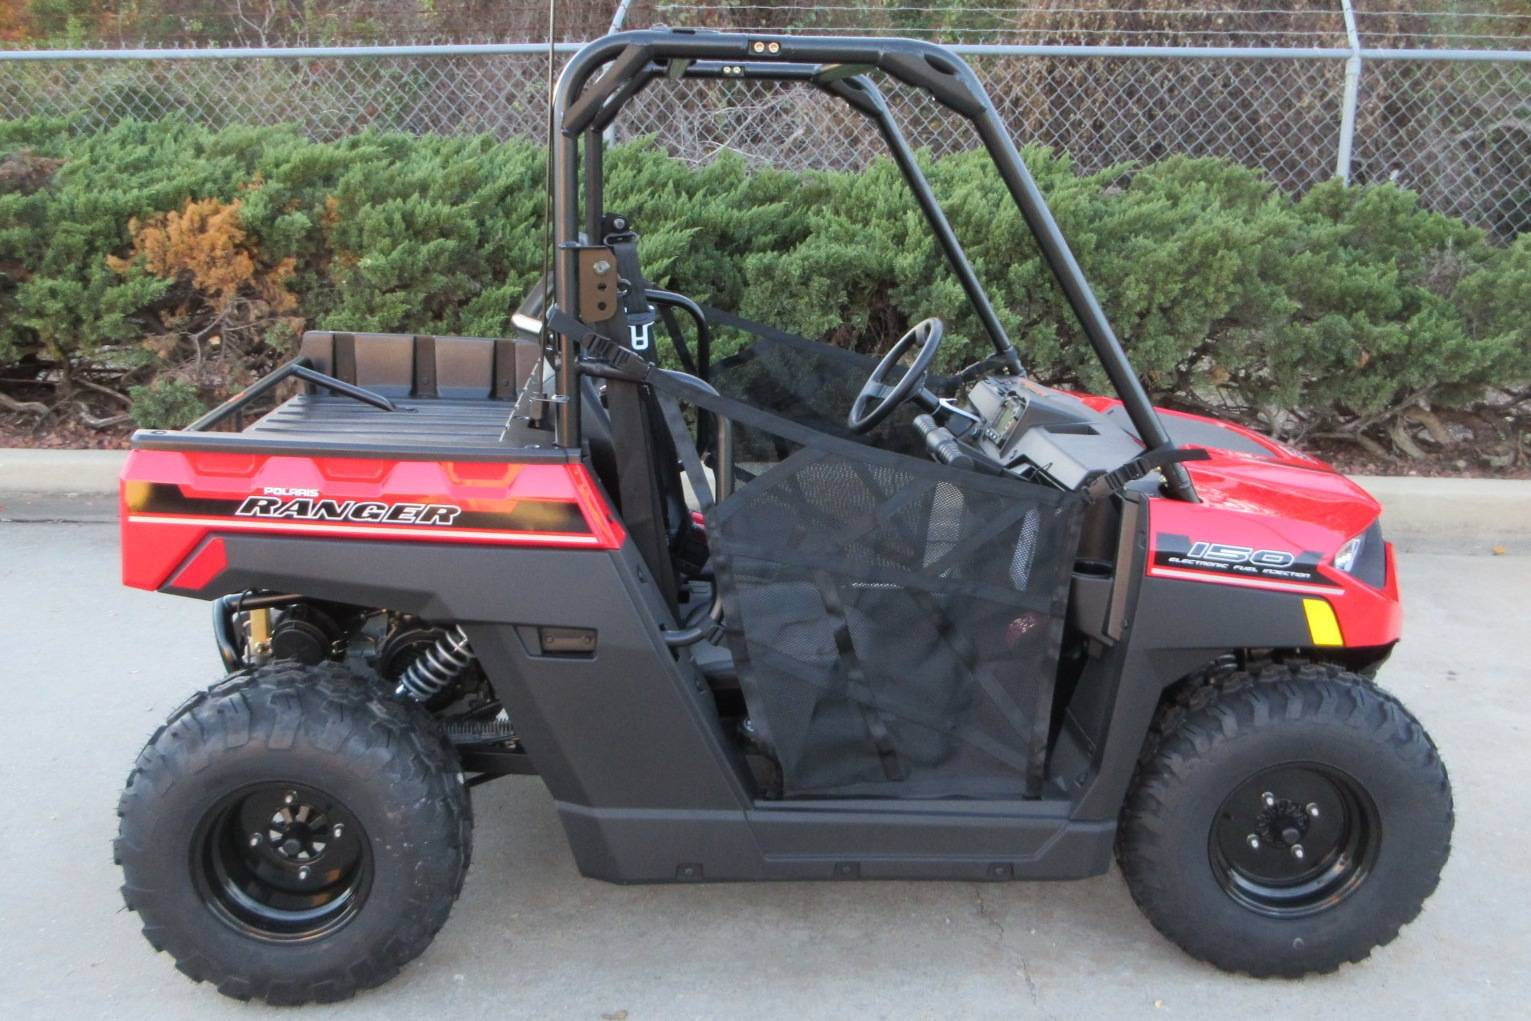 2019 Polaris Ranger 150 EFI in Sumter, South Carolina - Photo 1